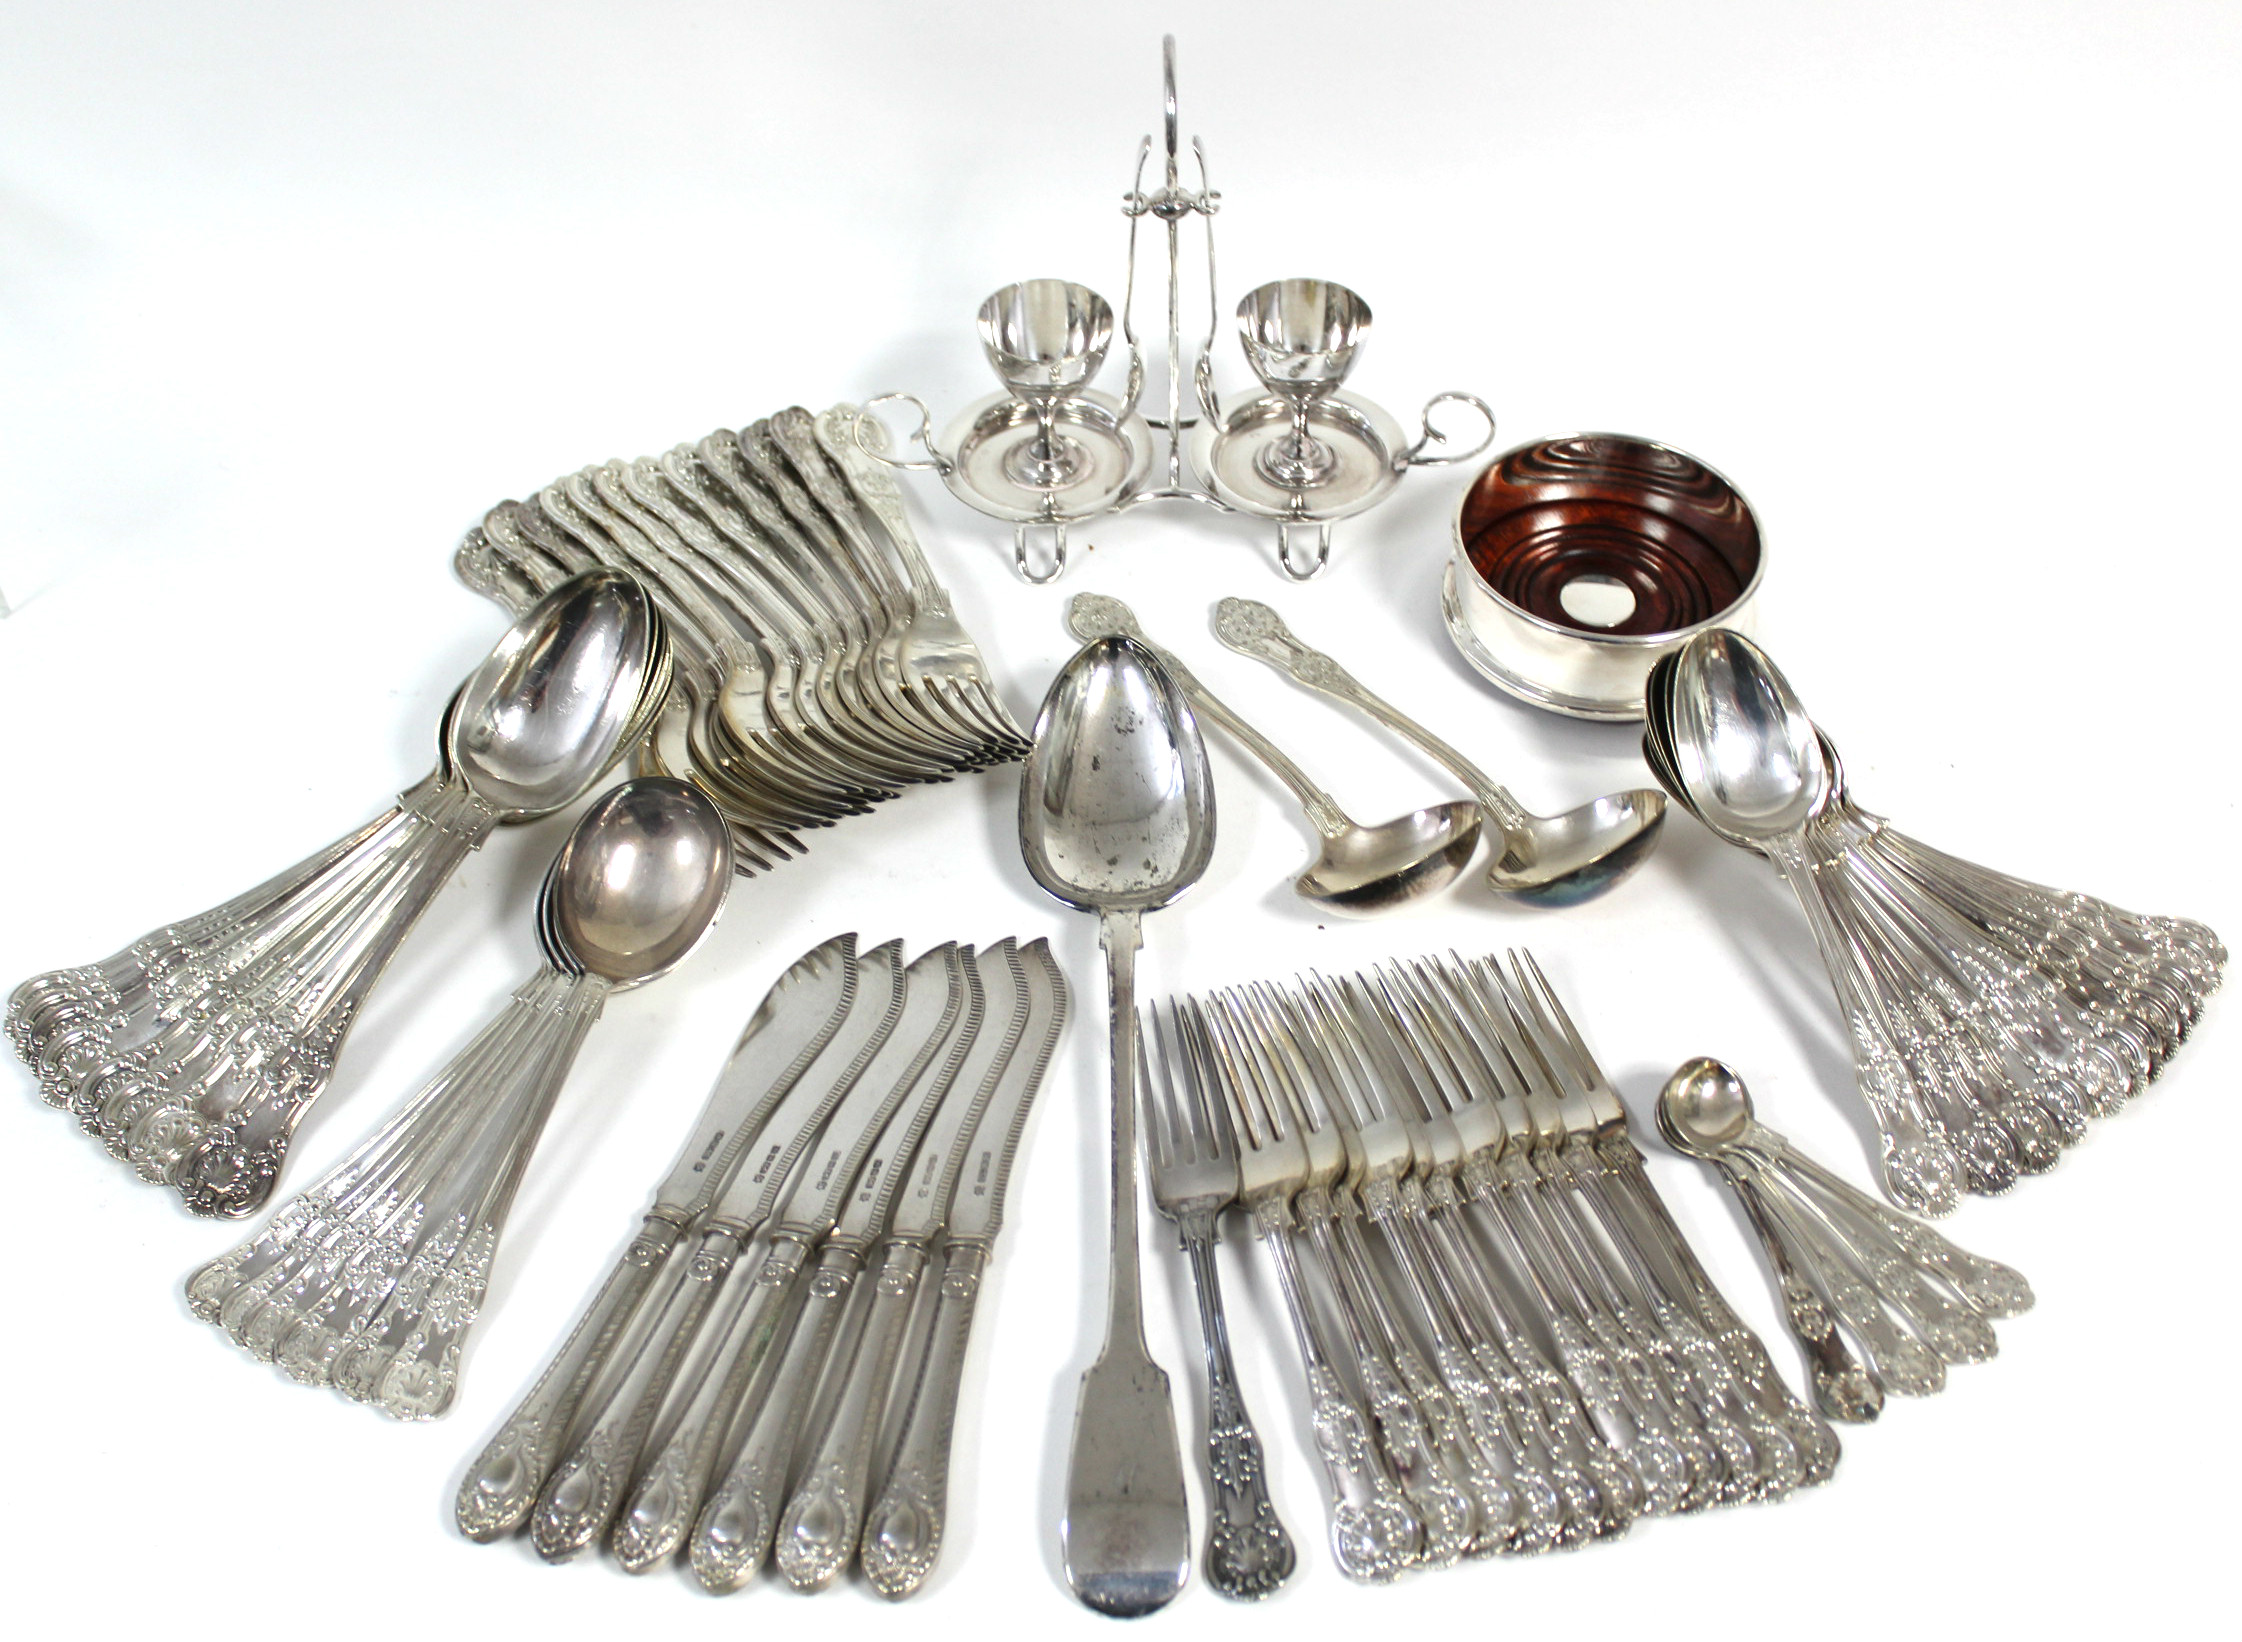 A part service of Queen's pattern flatware, comprising: eight table spoons, twelve table forks,